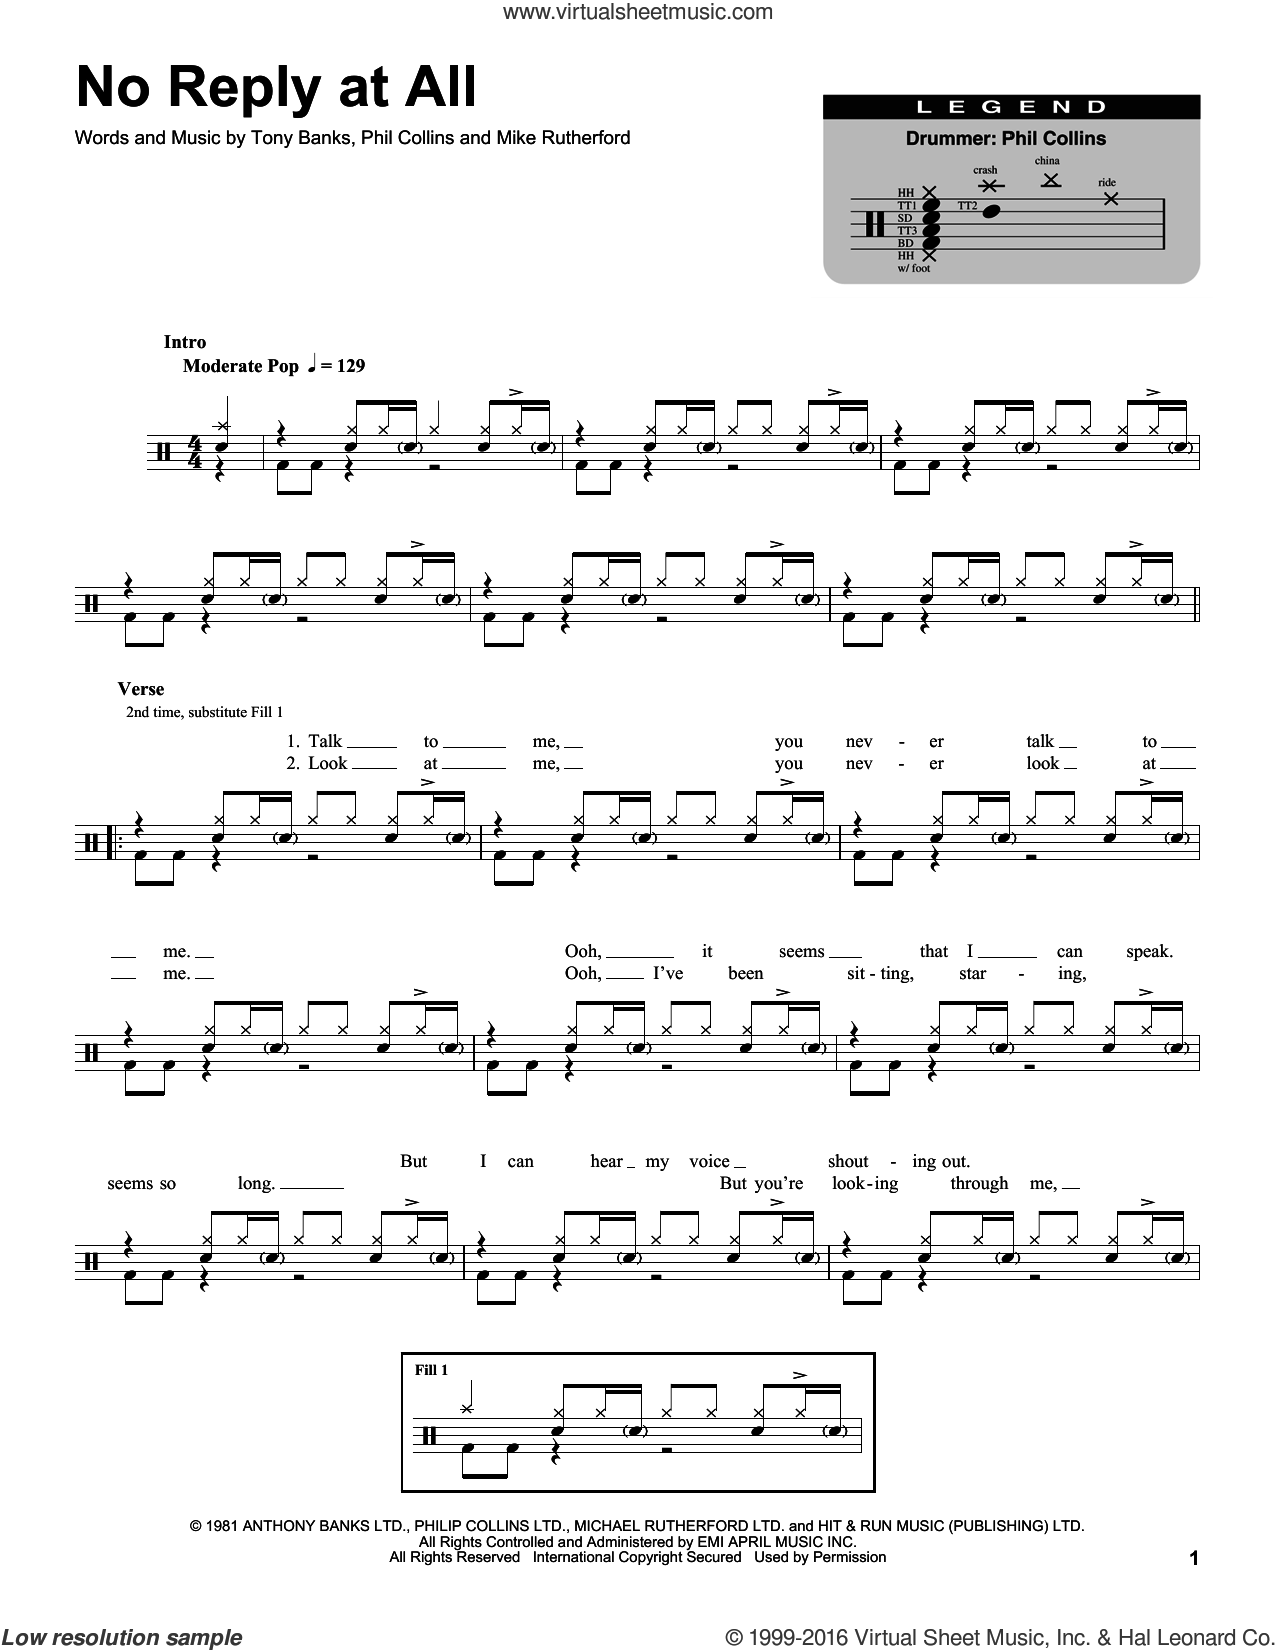 No Reply At All sheet music for drums by Tony Banks